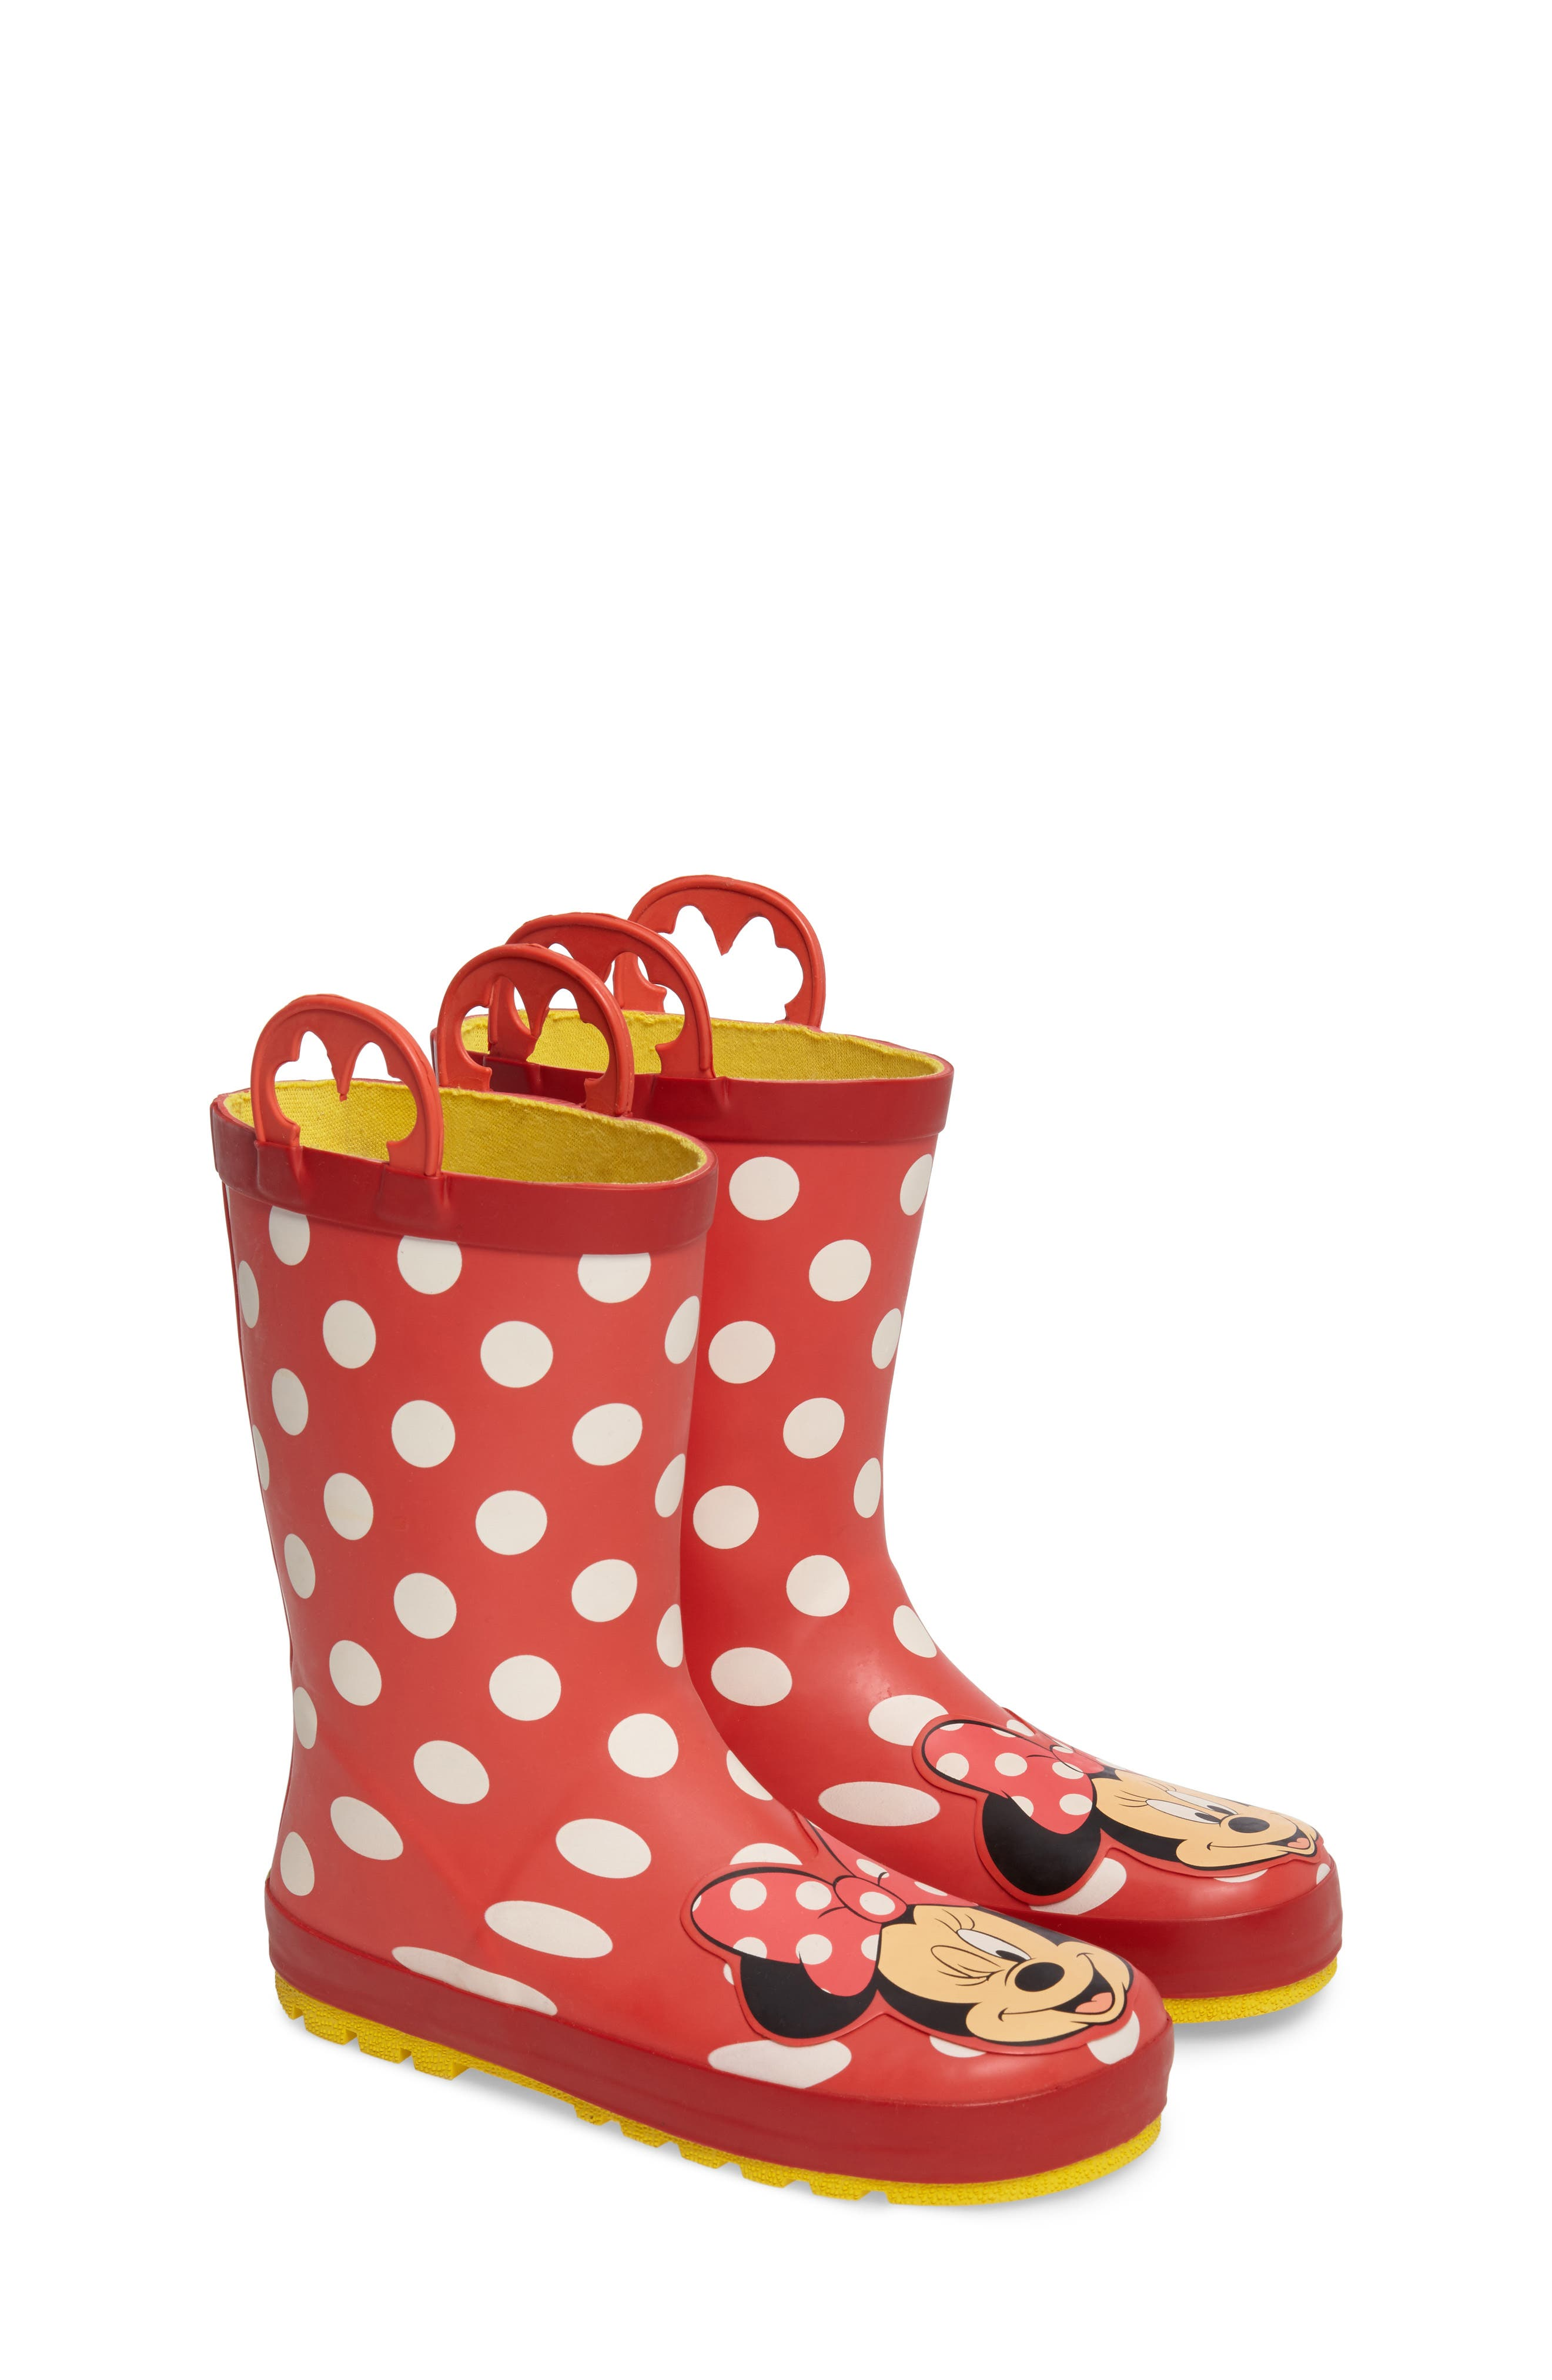 Minnie Mouse Rain Boot,                         Main,                         color, Red